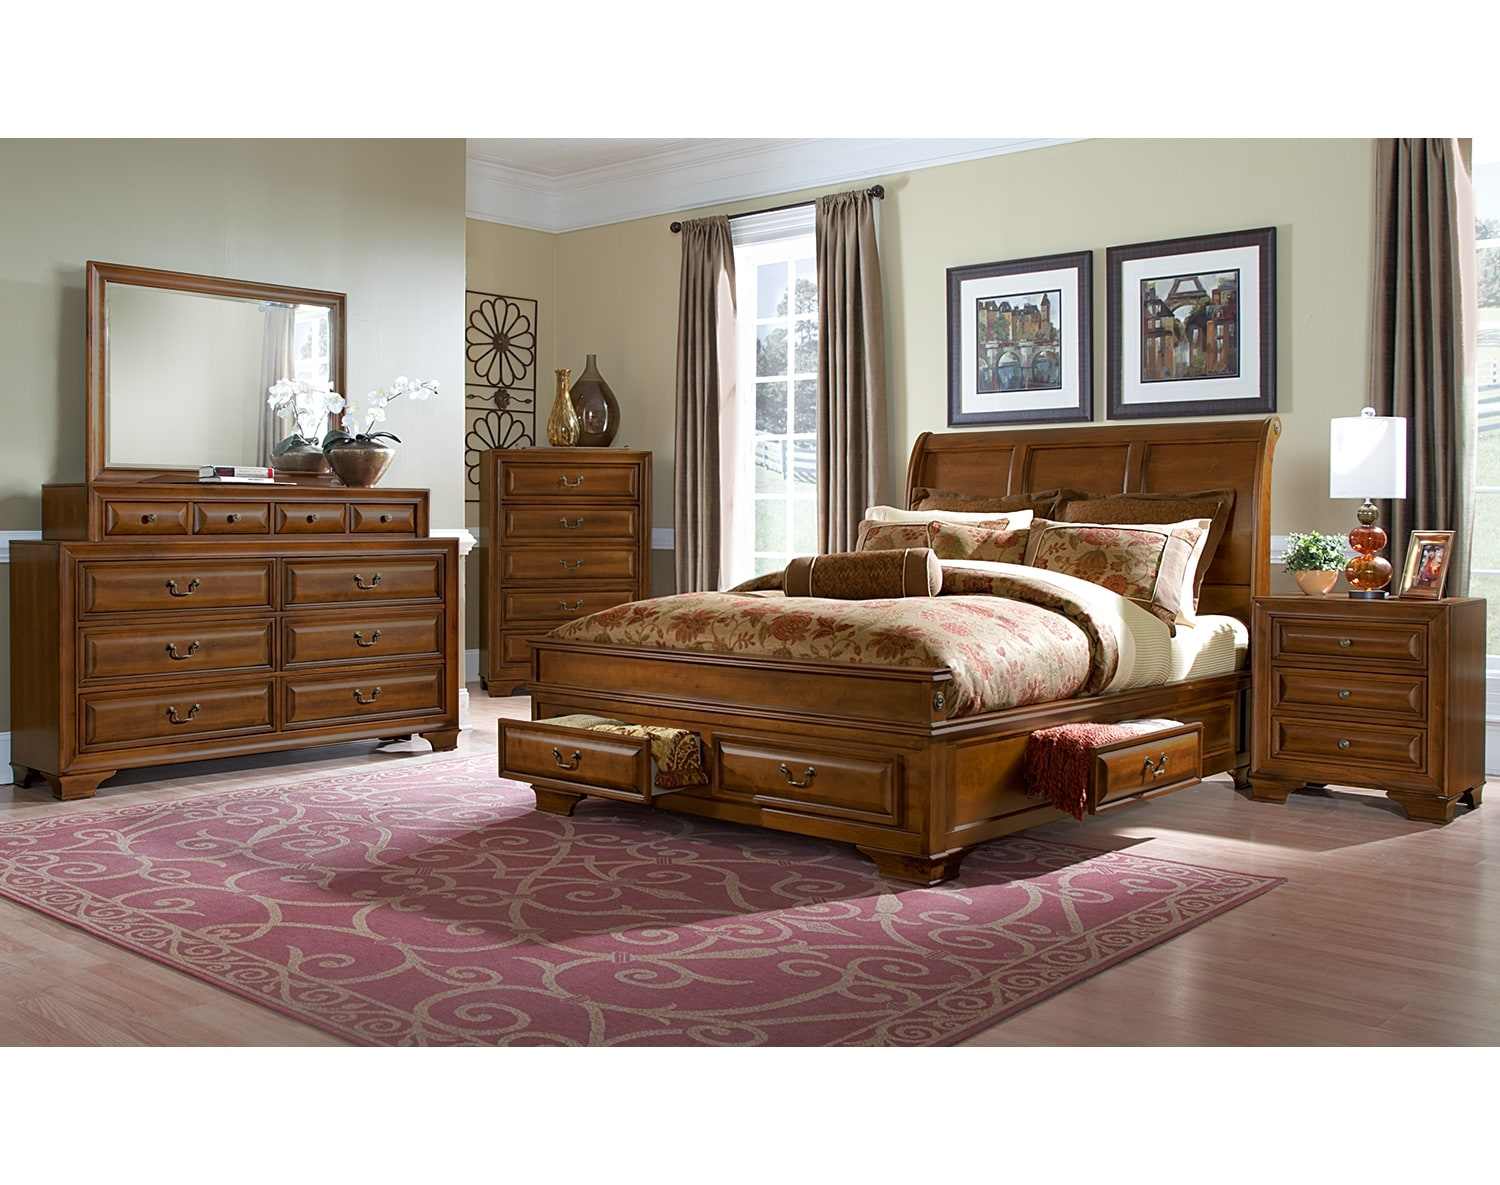 Best Selling Bedroom FurnitureAmerican Signature Furniture